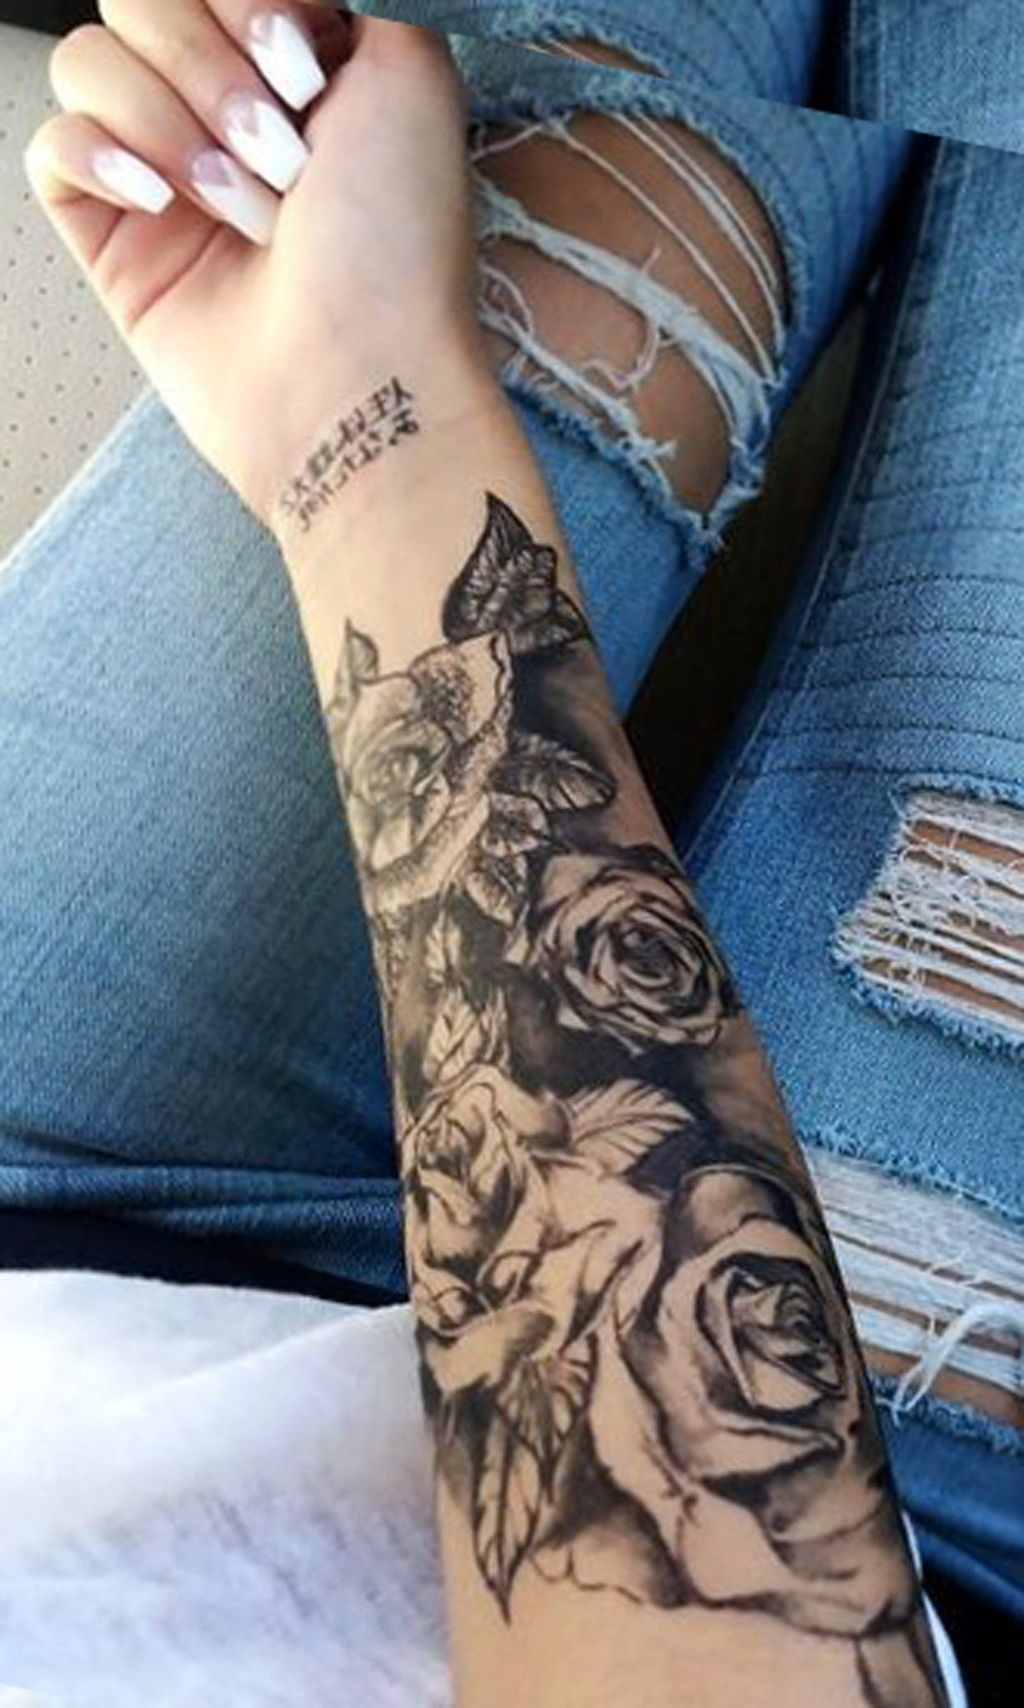 30 Casual Sleeve Tattoo Ideas For Men In 2019 Tattoos For Women Flowers Tattoos For Women Half Sleeve Sleeve Tattoos For Women